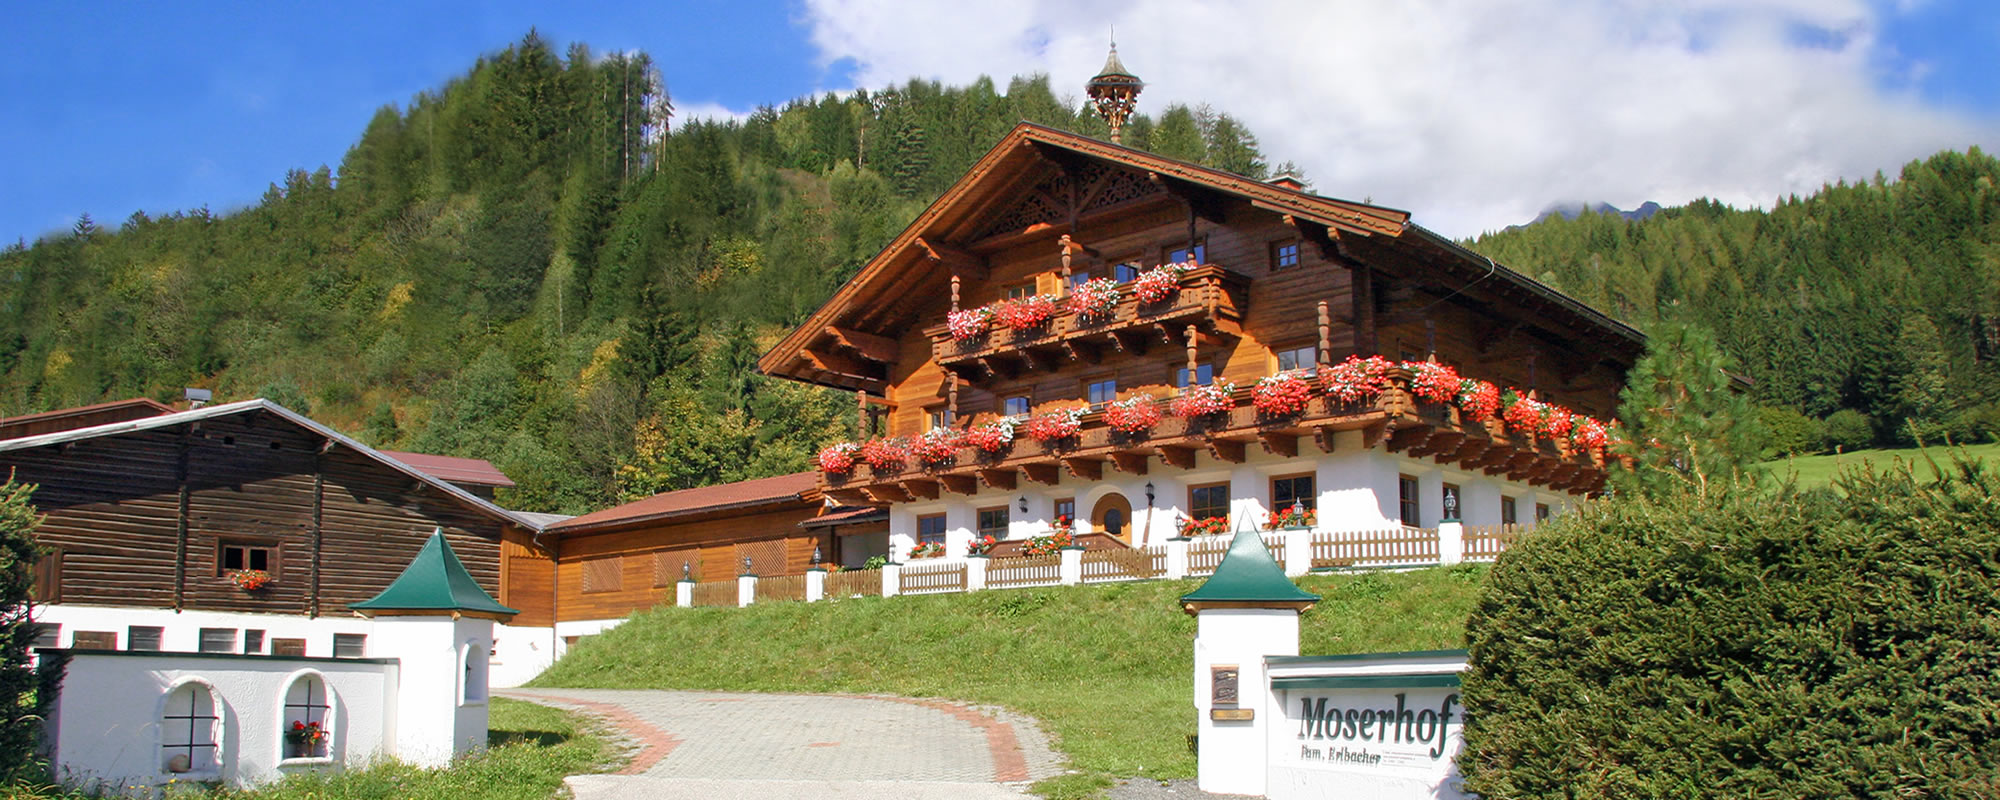 Appartements in Schladming am Moserhof